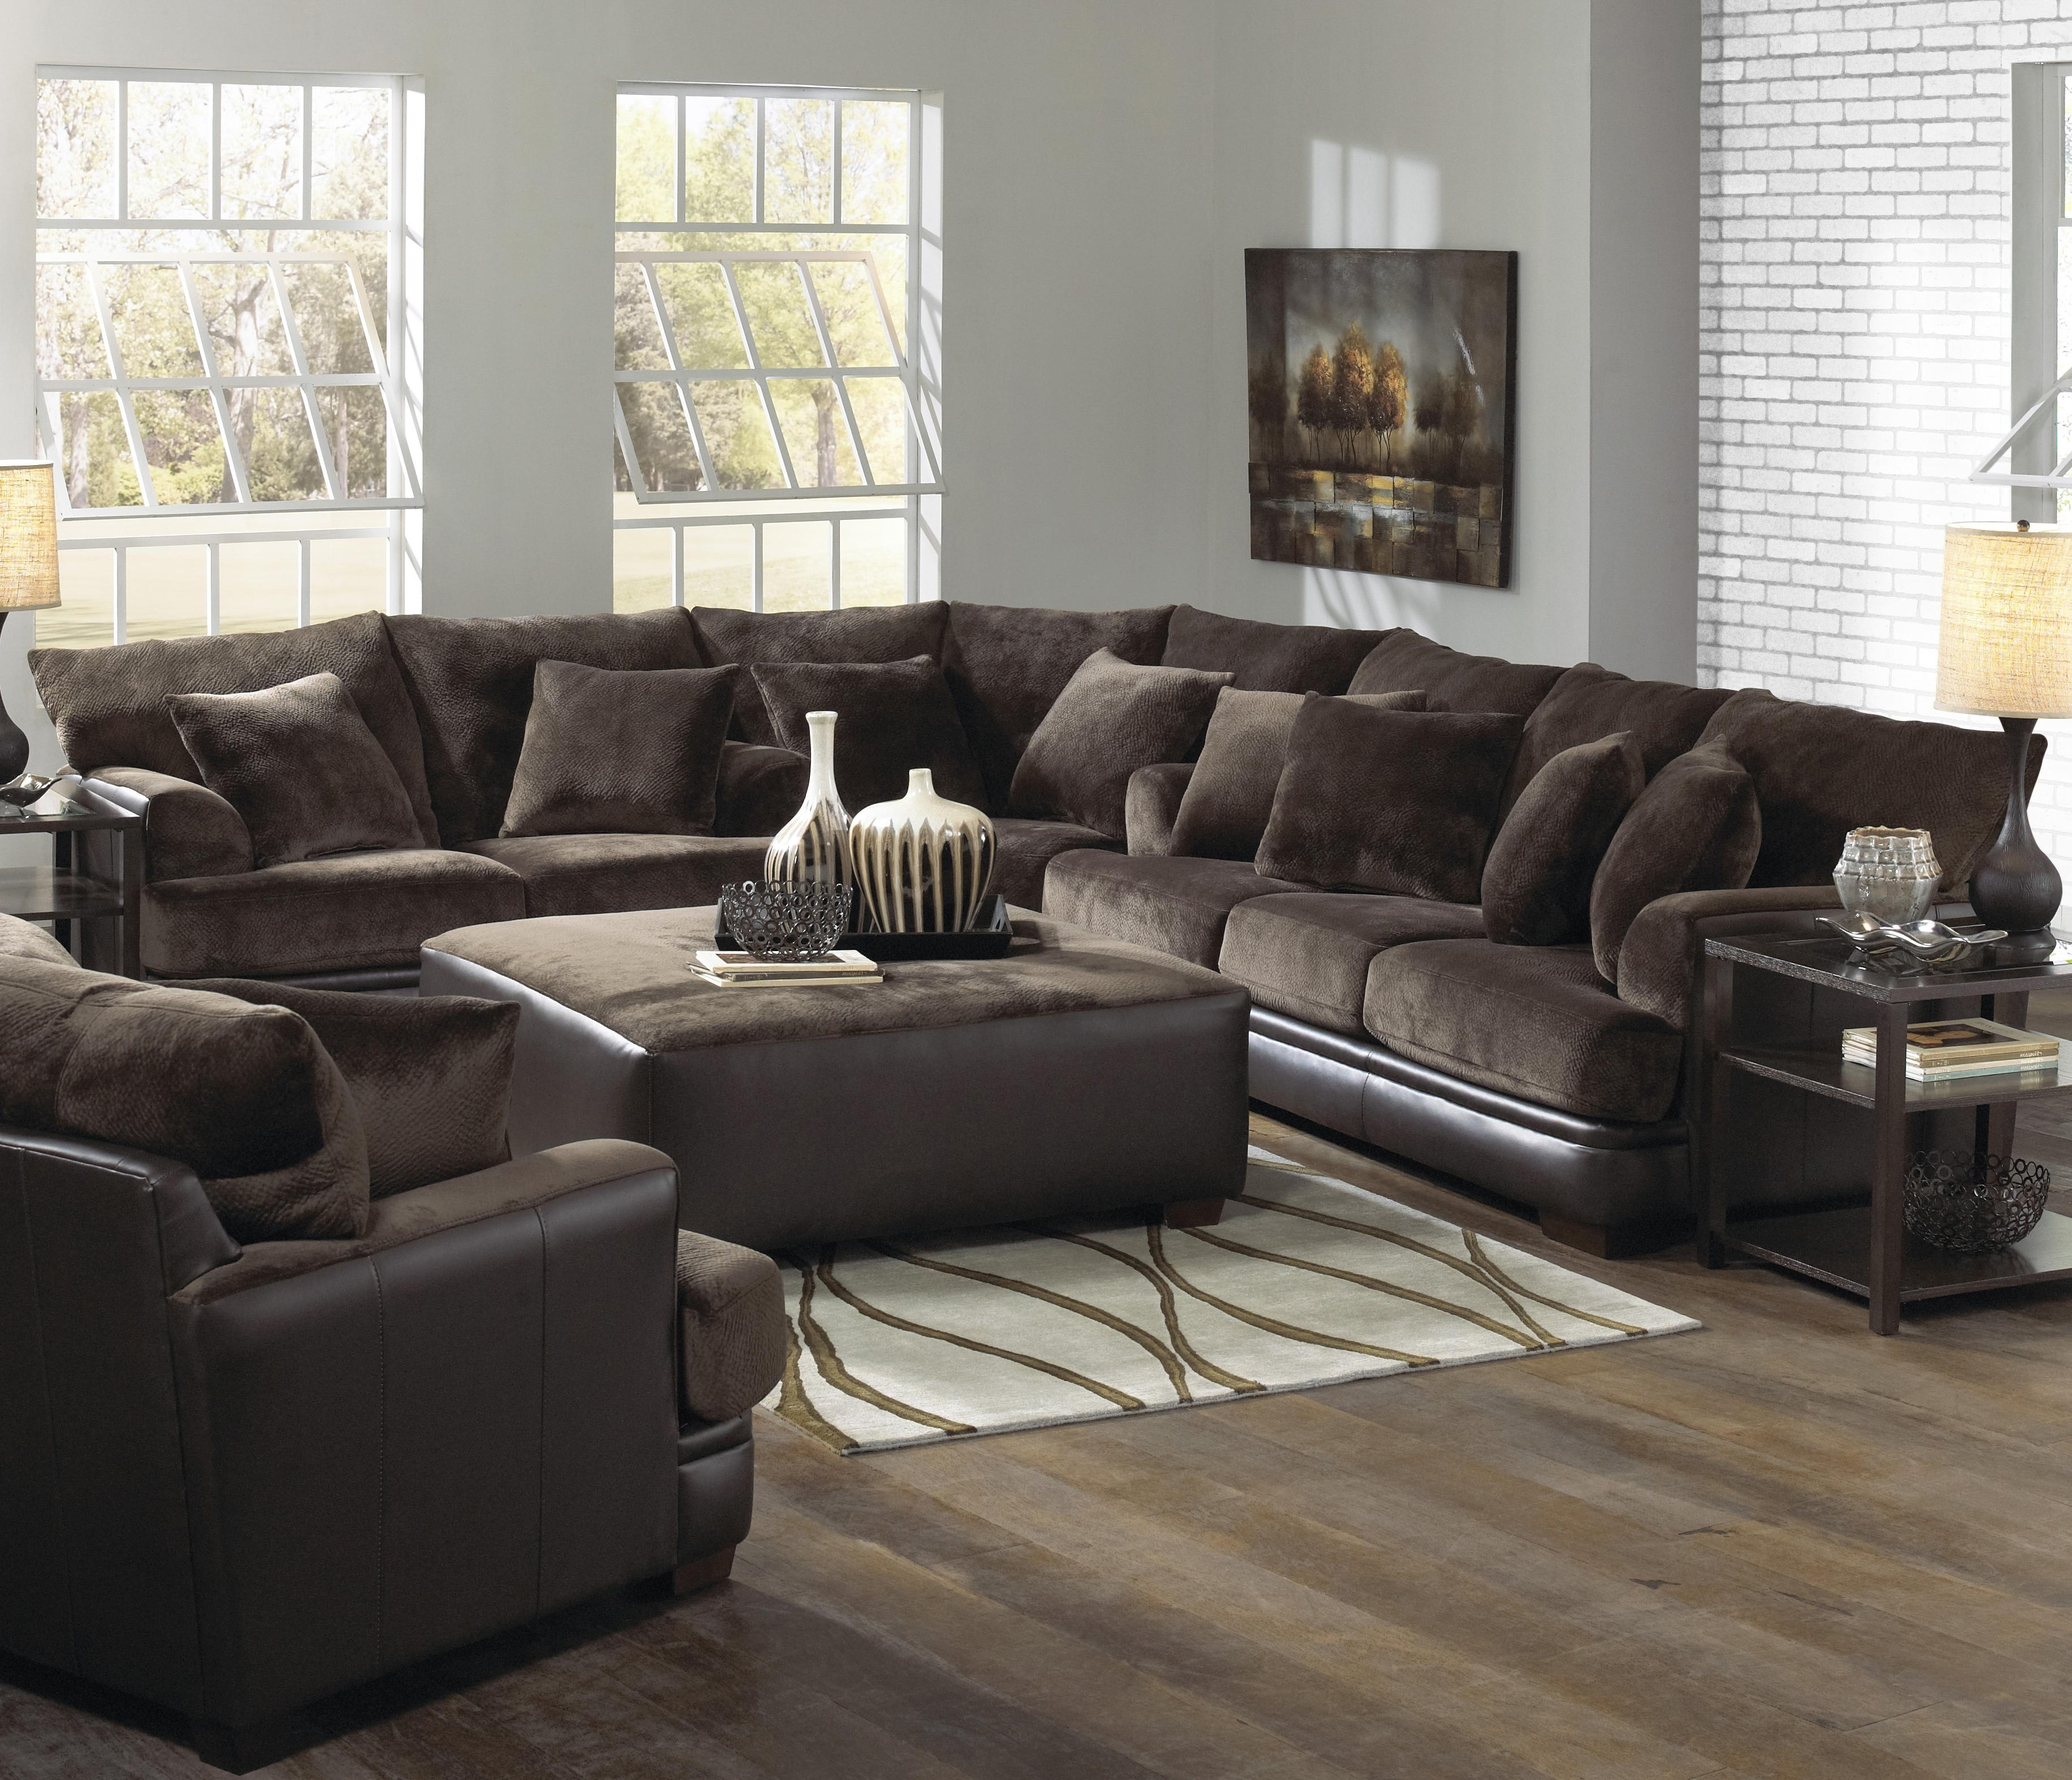 Sectional Sofa Design: Best Seller L Shaped Sectional Sofas For With Modern U Shaped Sectional Sofas (View 13 of 15)